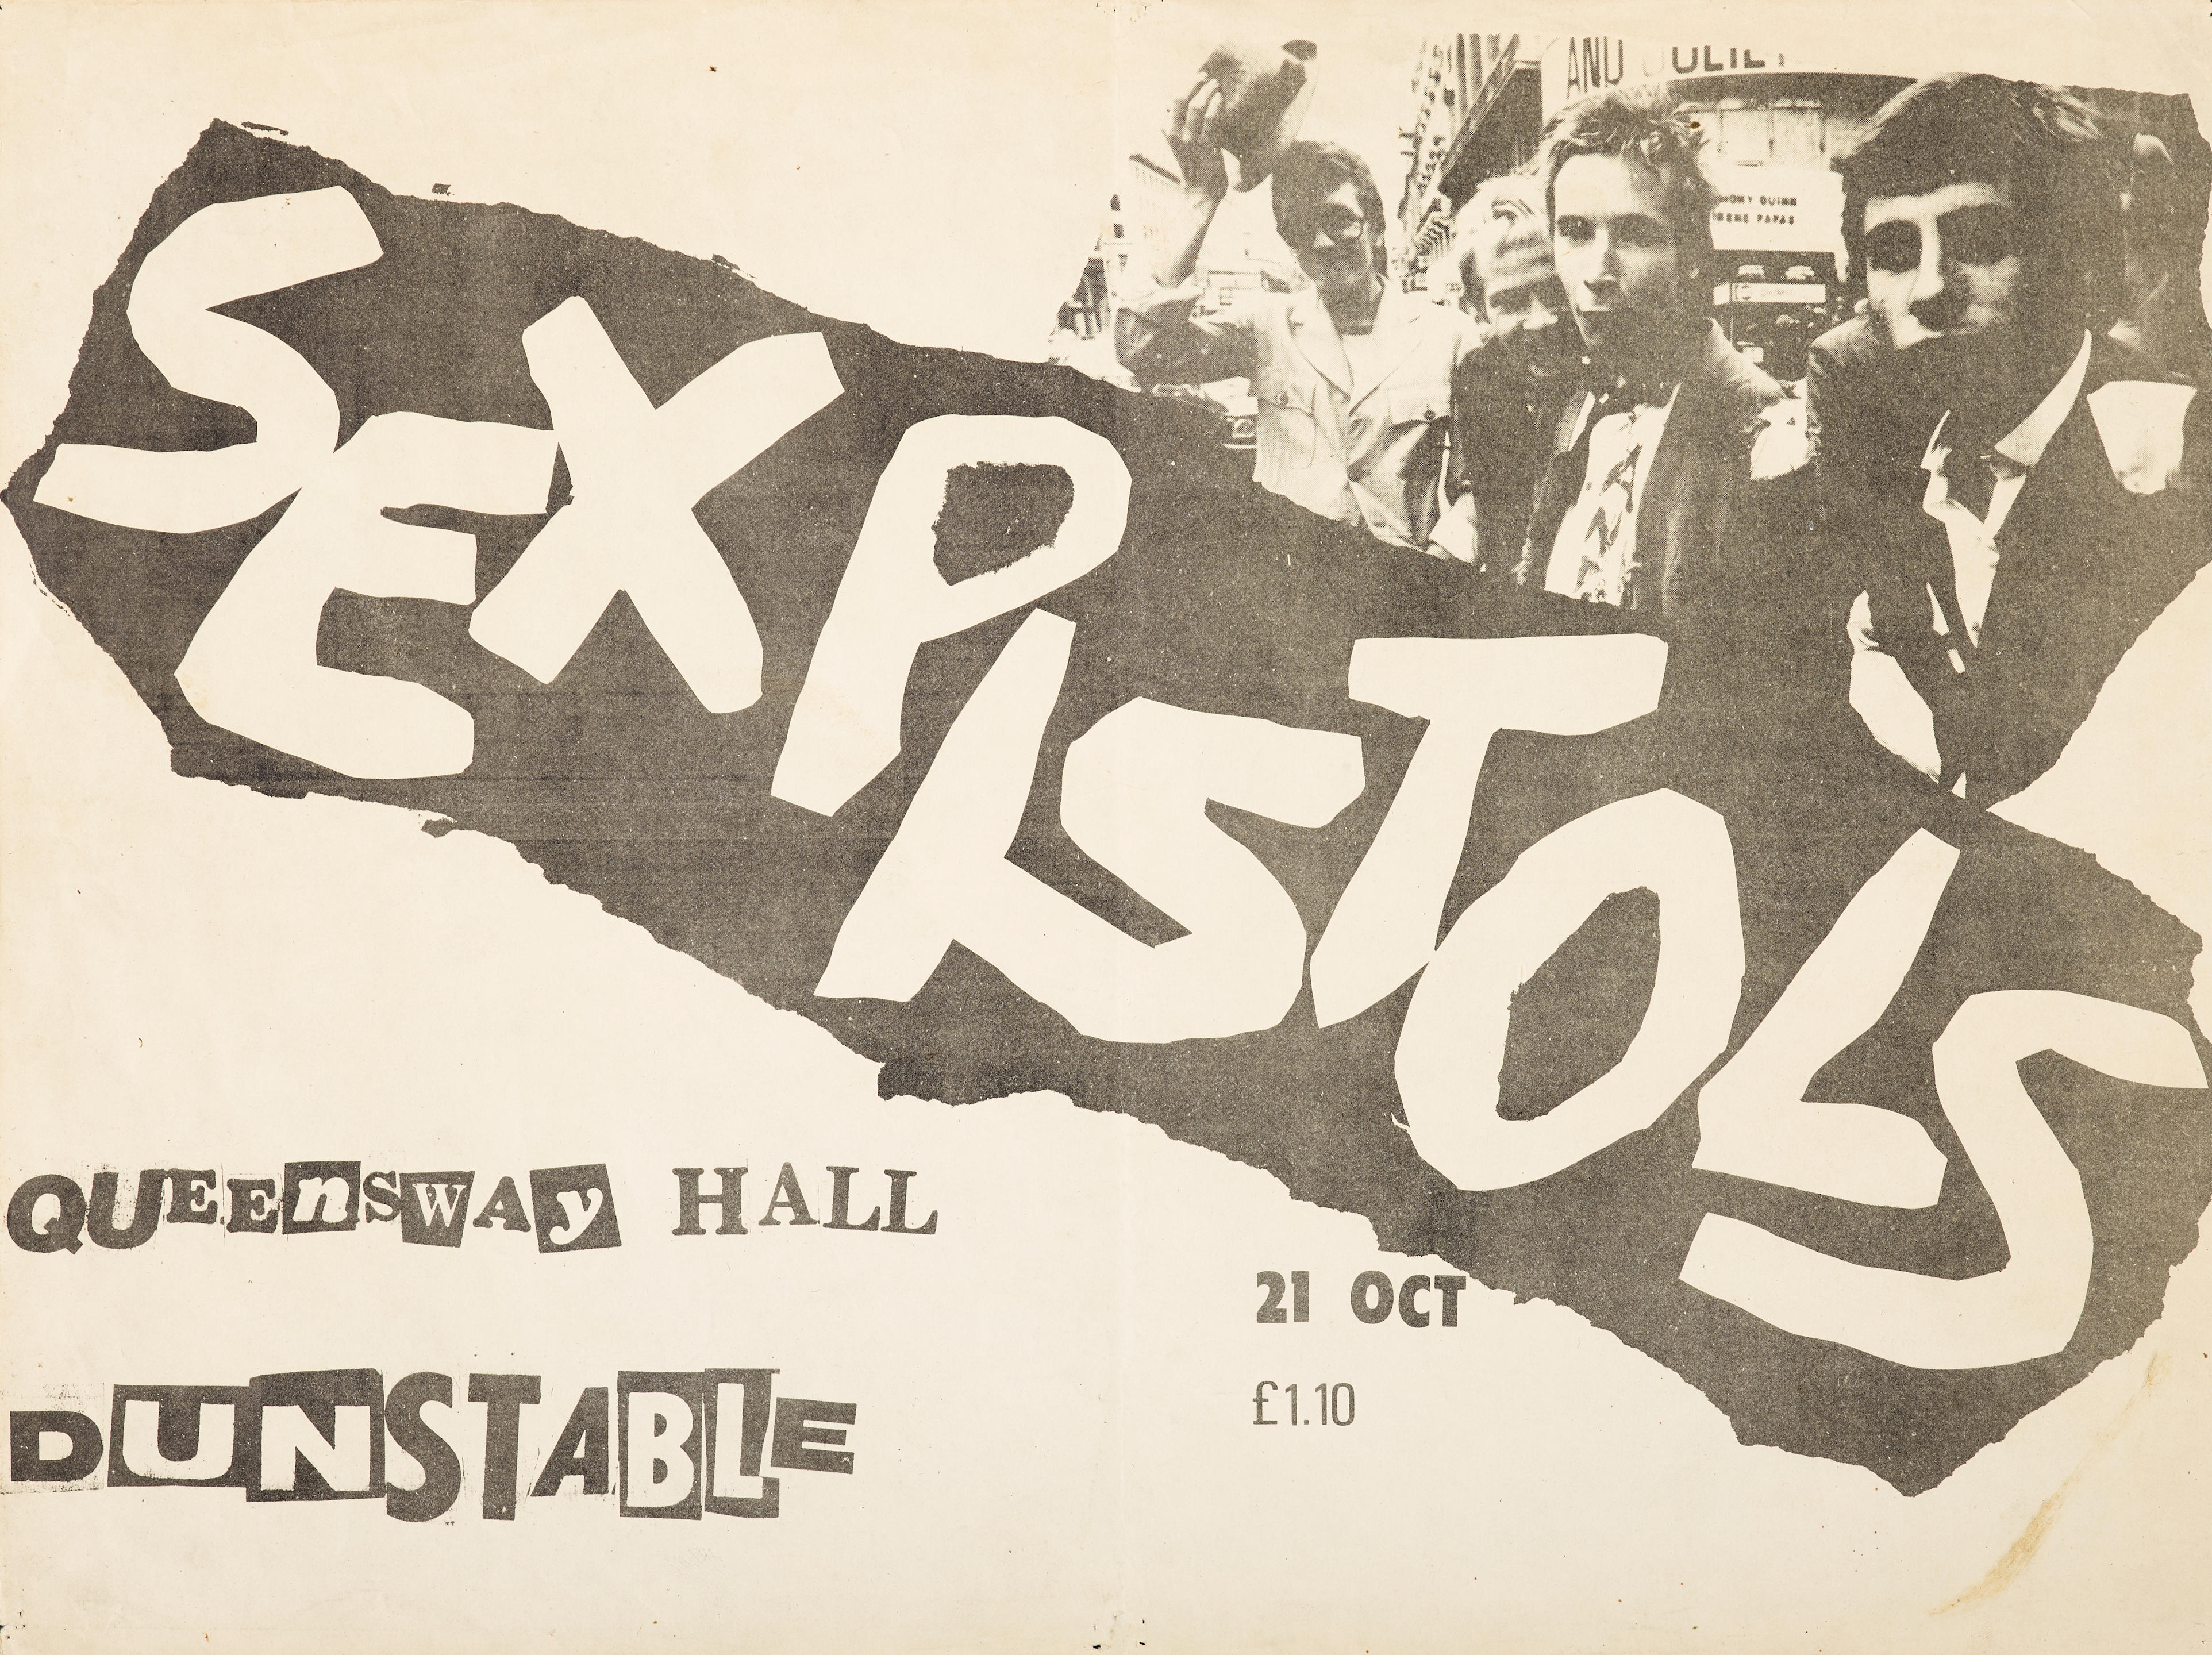 A small rare concert poster for the Sex Pistols at Queensway Hall, Dunstable, UK 21 October 1976